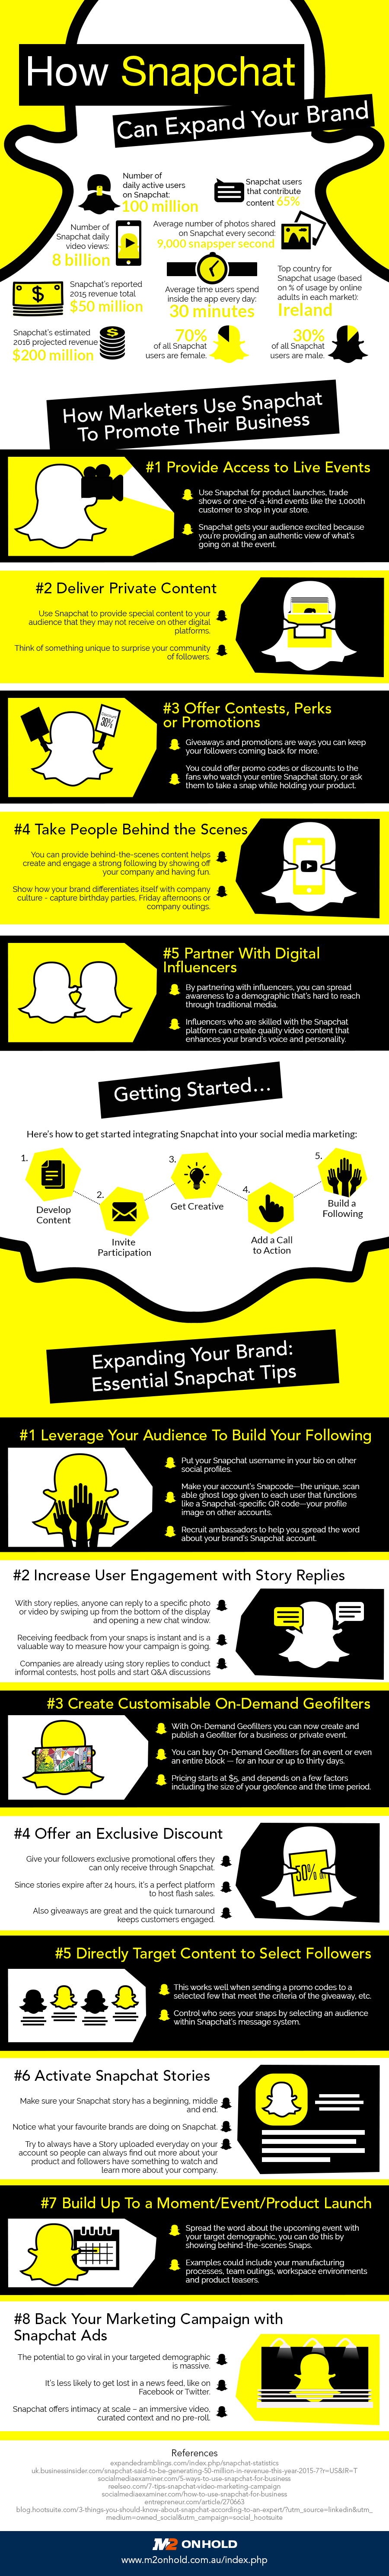 Infographic: Snapchat For Marketing